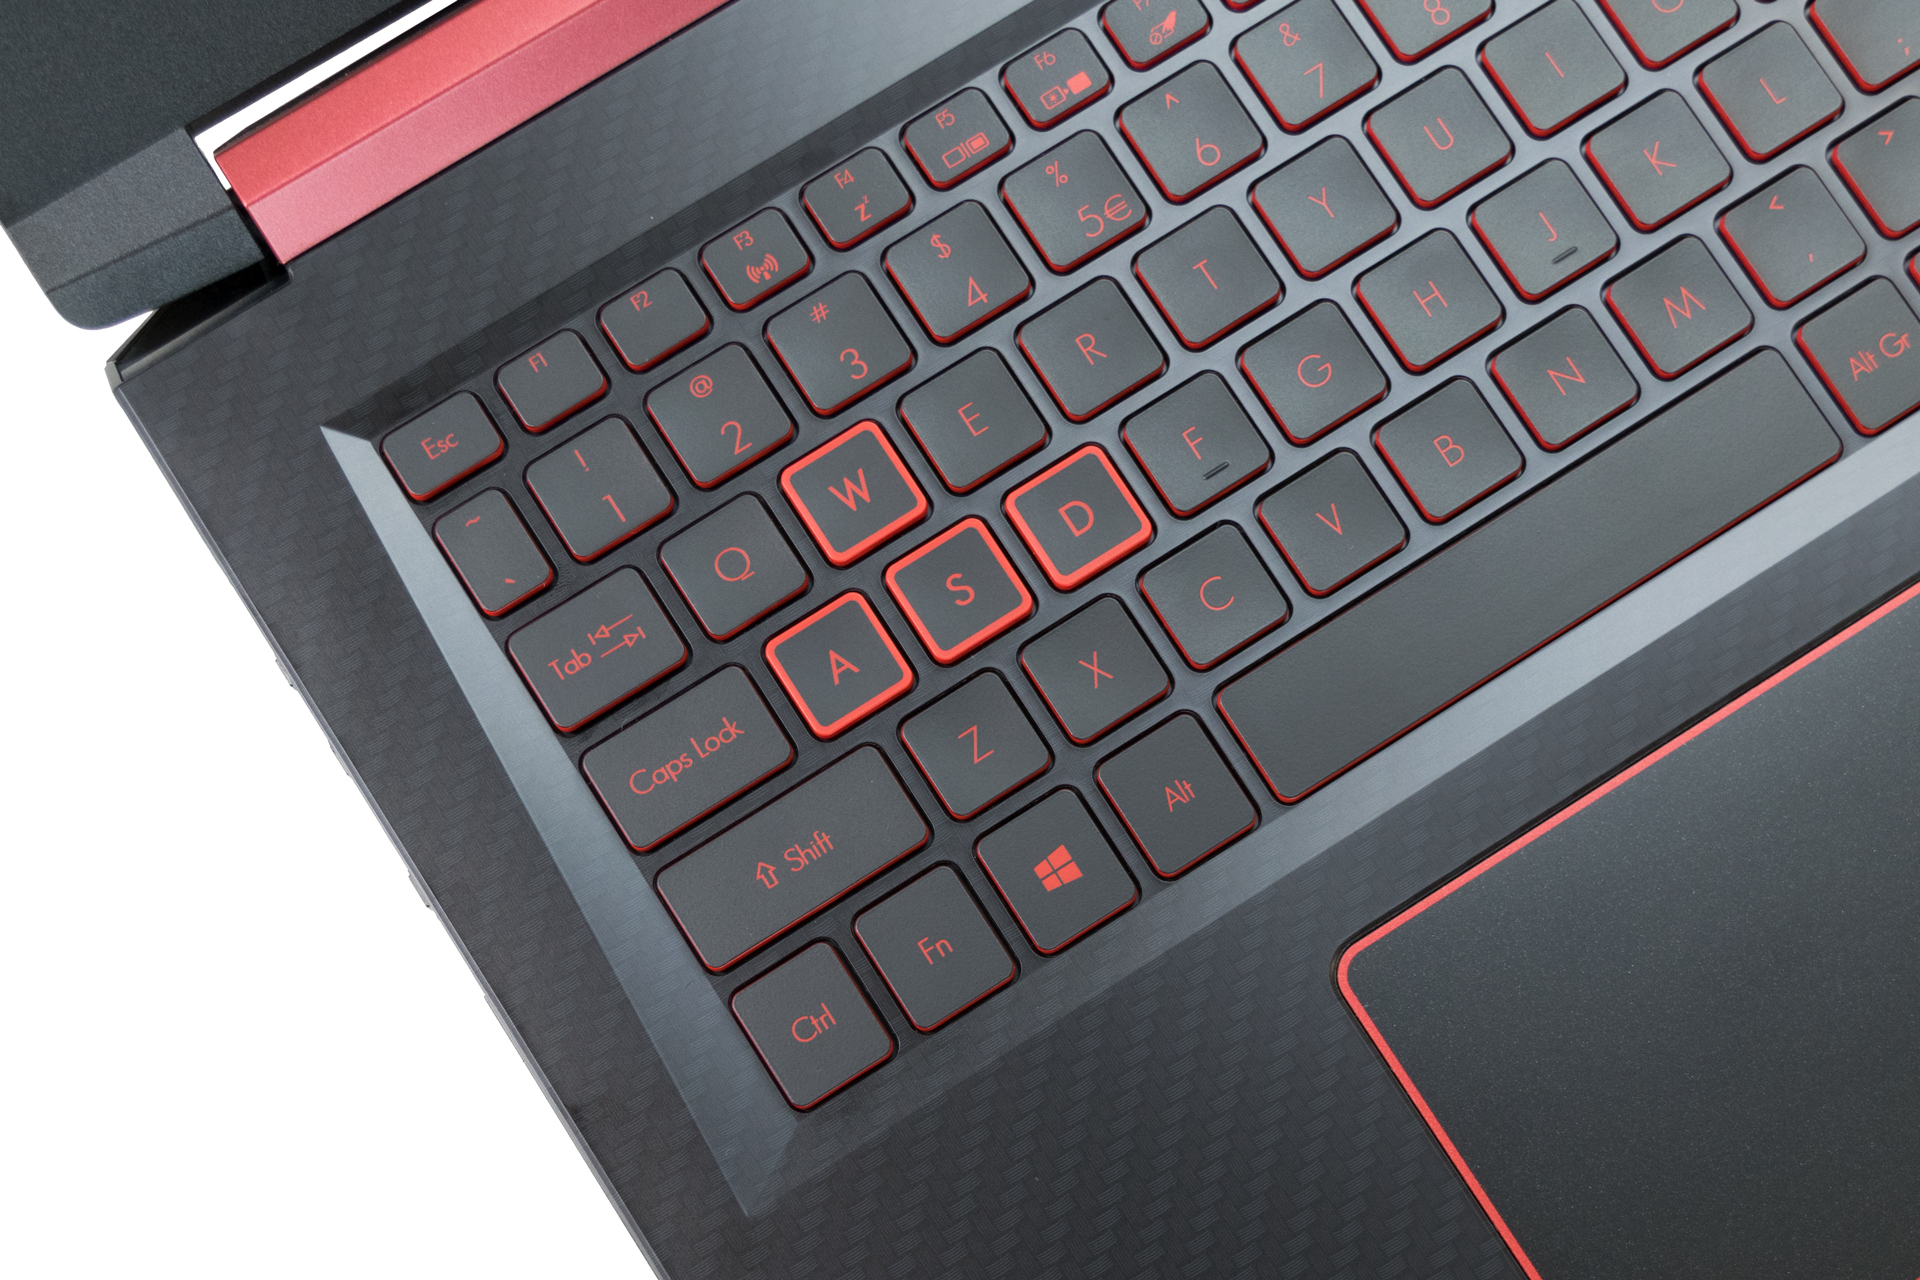 Acer Nitro 5 (AN515-42, Radeon RX 560X) review – not just a facelift